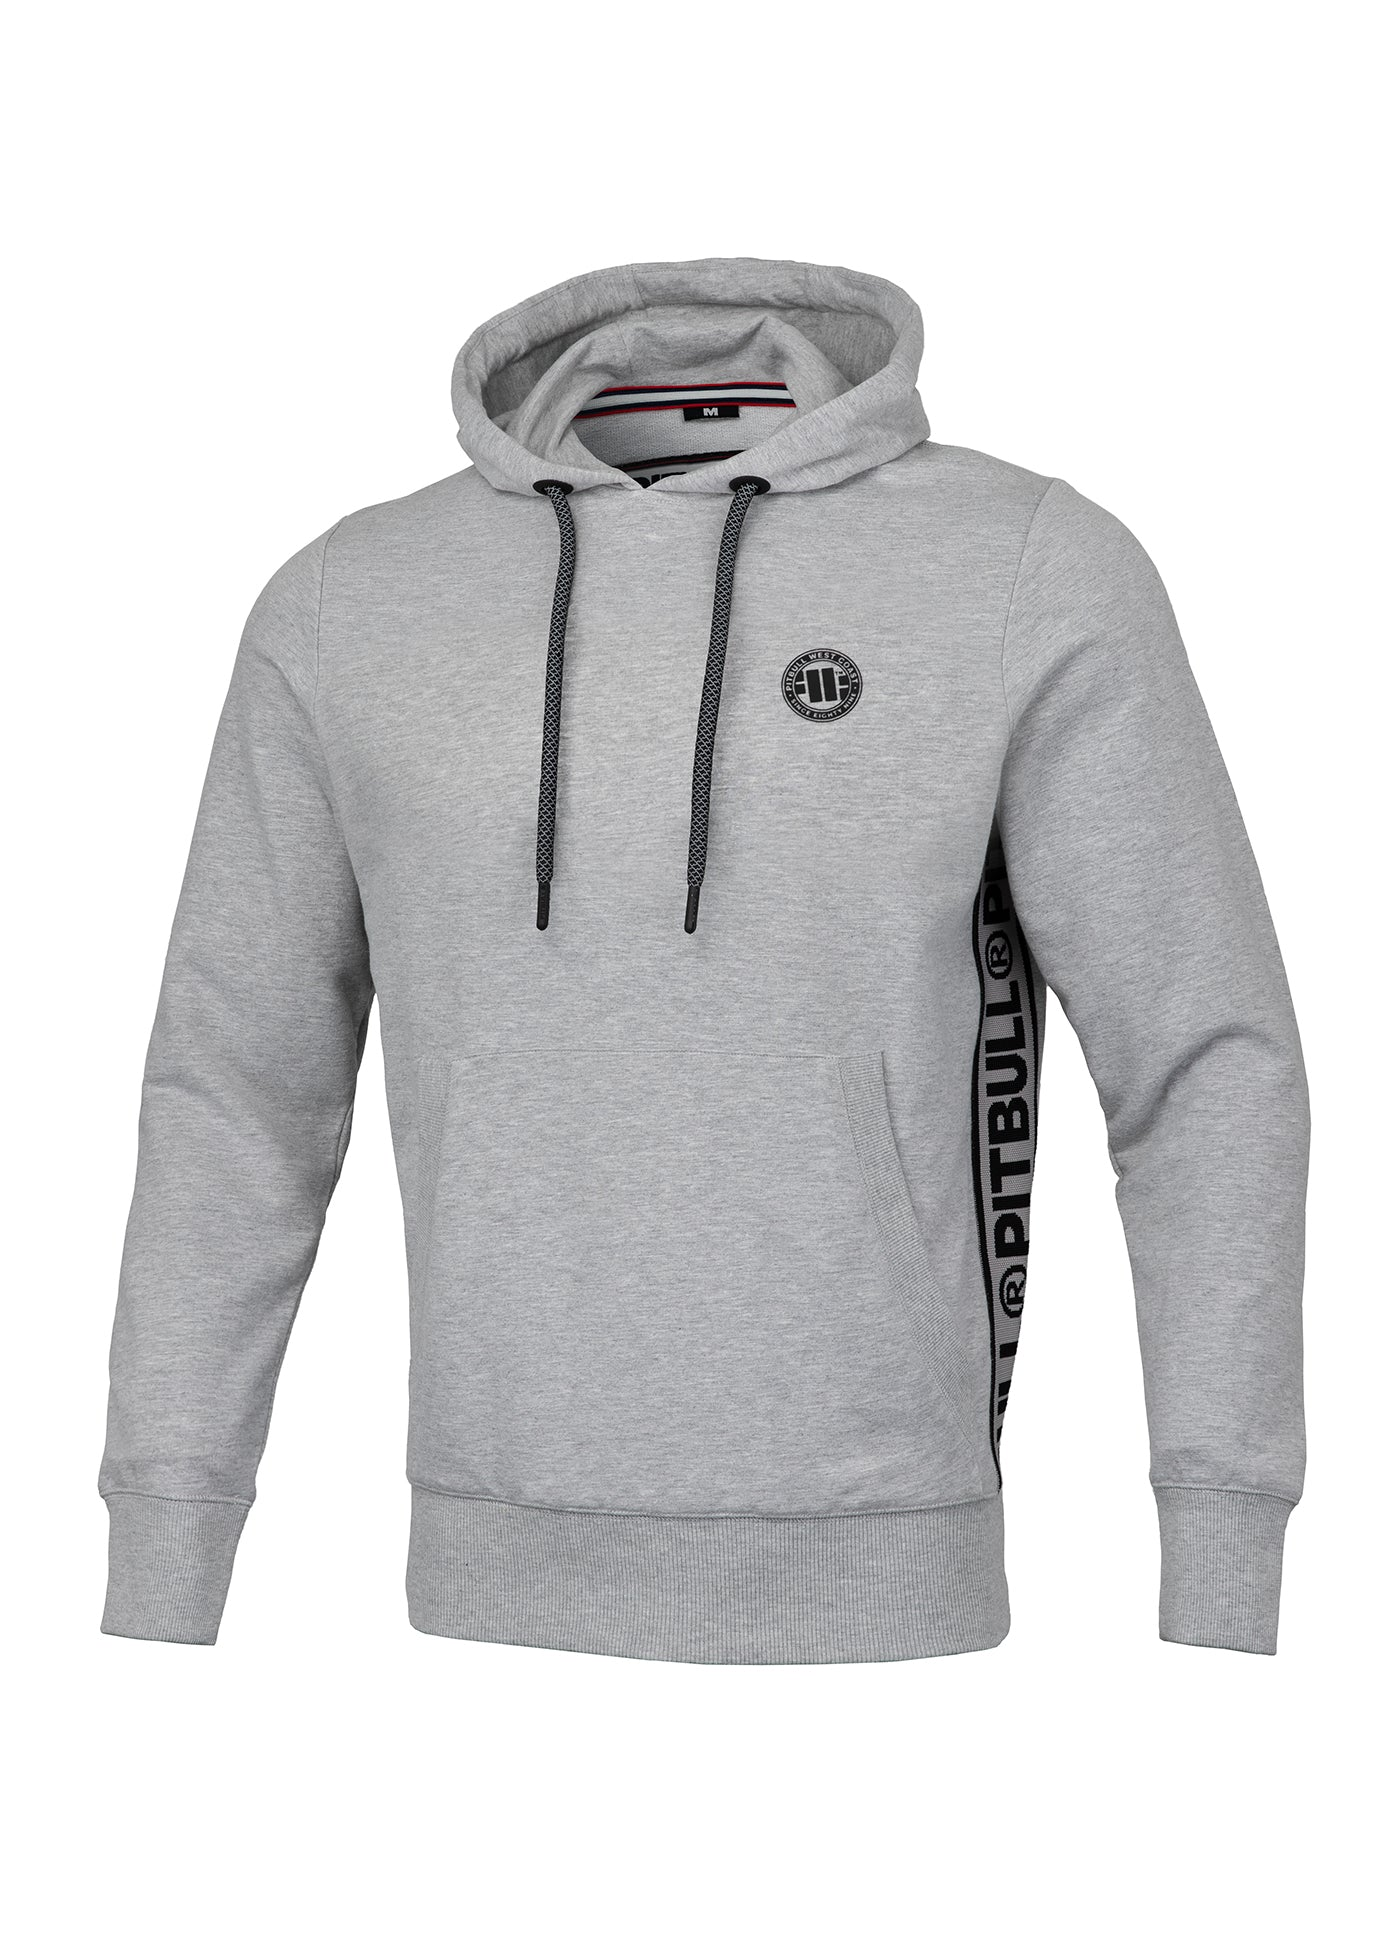 Hooded Small Logo FRENCH TERRY Grey - pitbullwestcoast